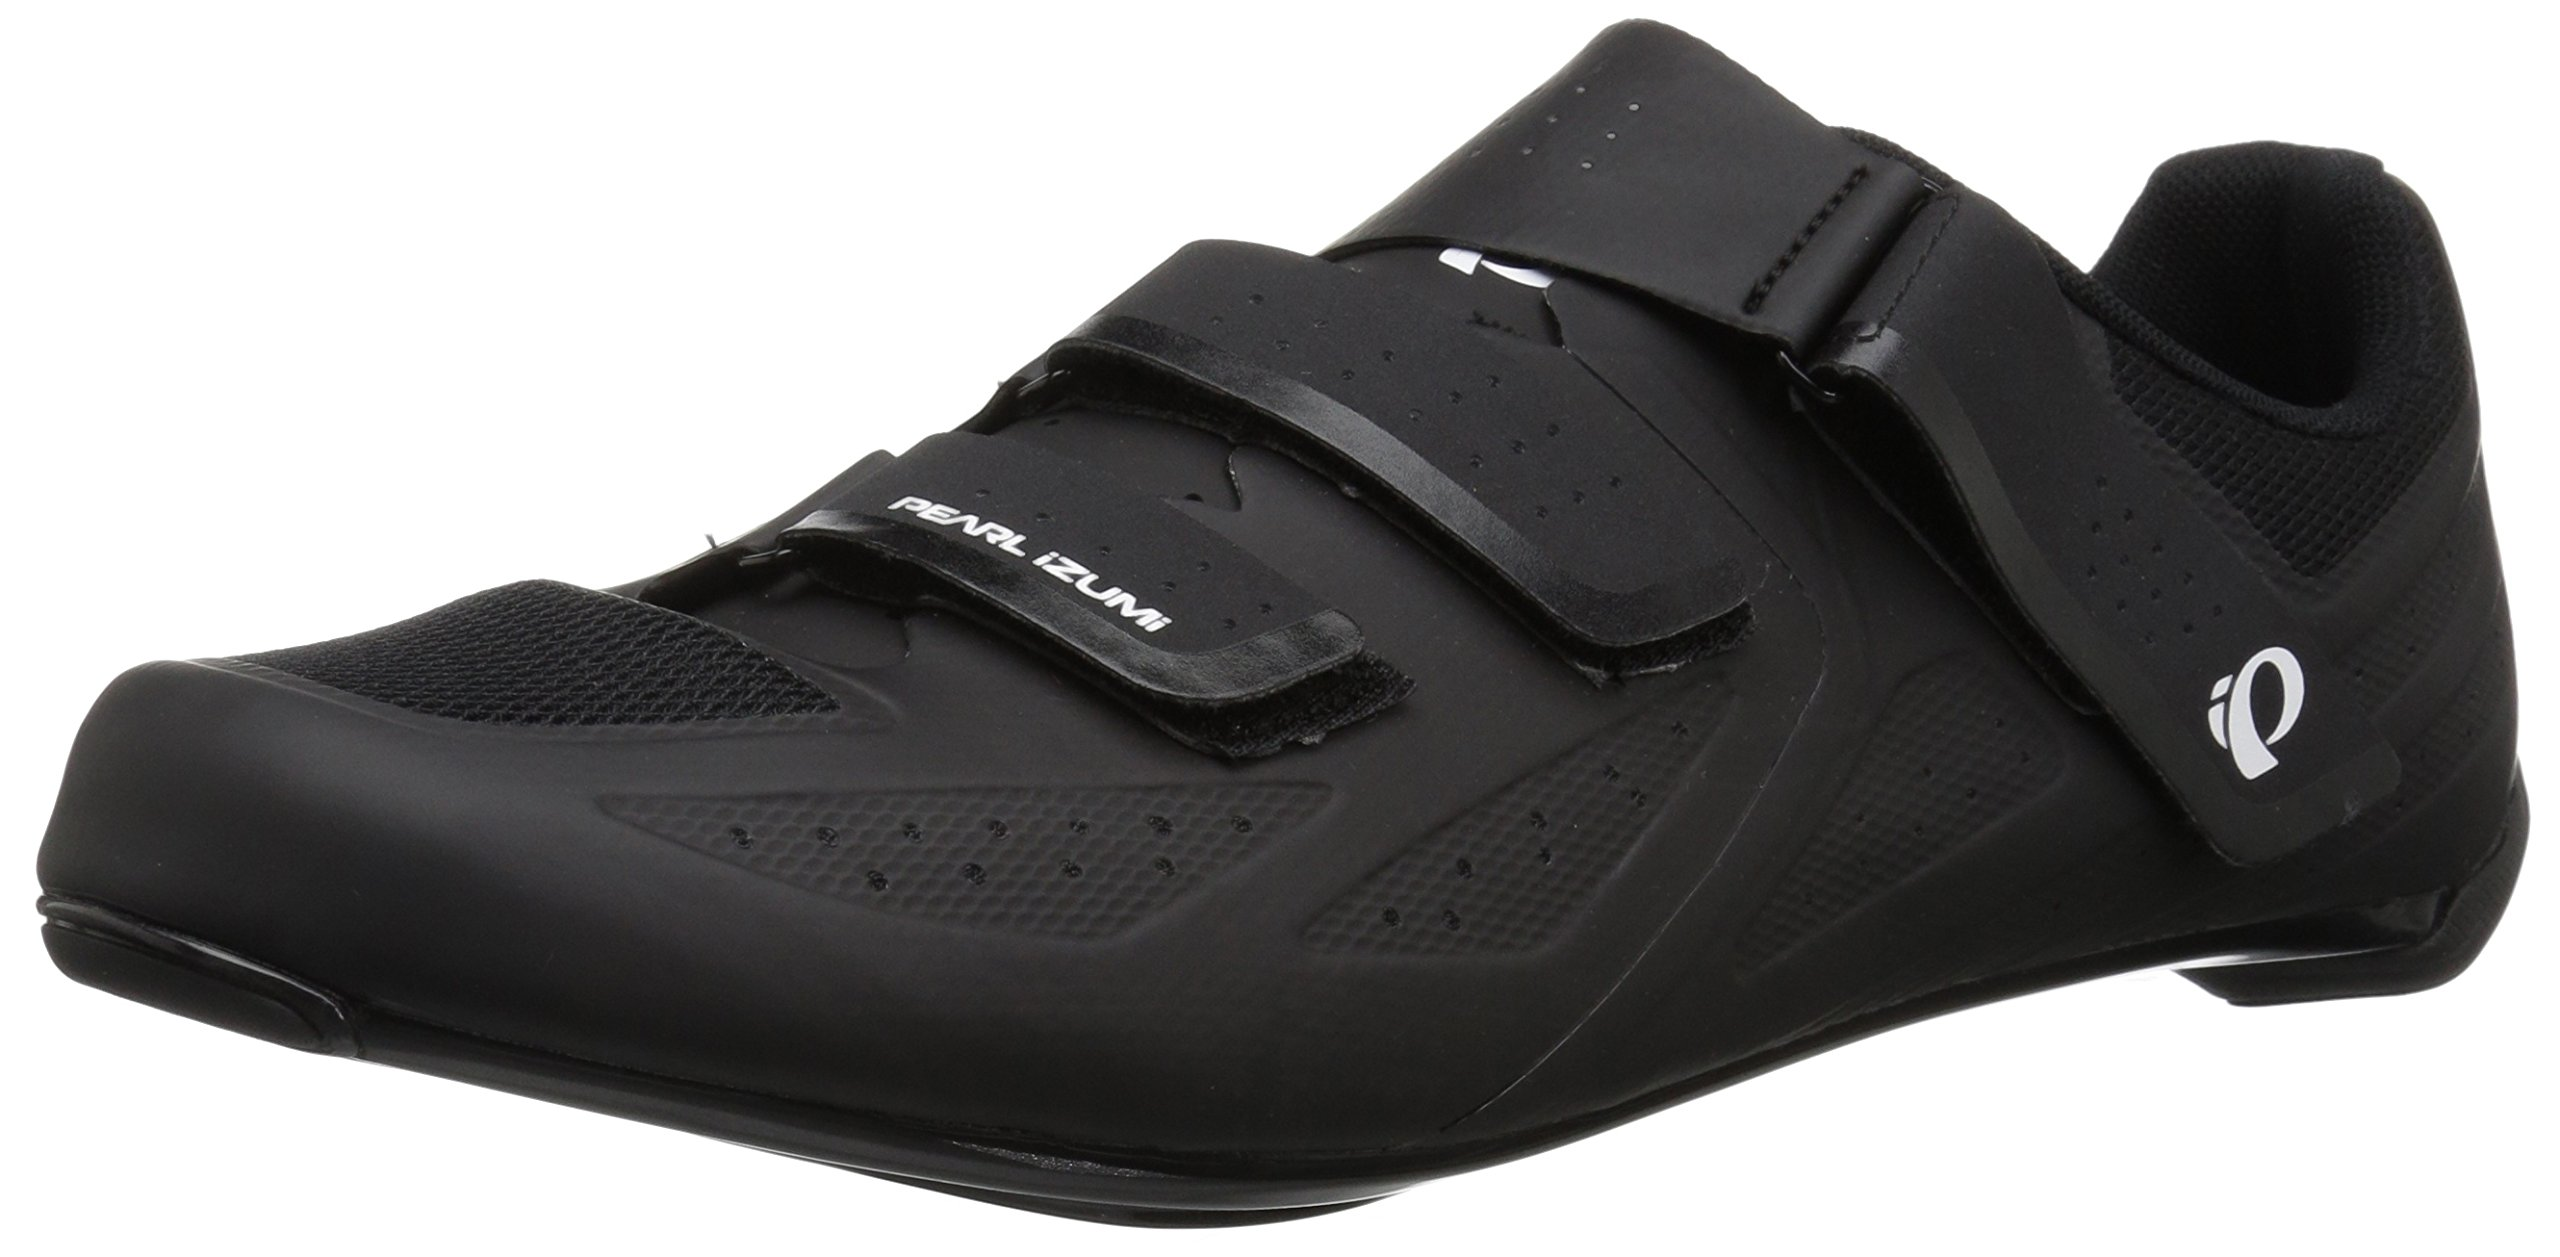 Pearl iZUMi Men's Select Road v5 Cycling Shoe, Black/Black, 51.0 M EU (15.5 US) by Pearl iZUMi